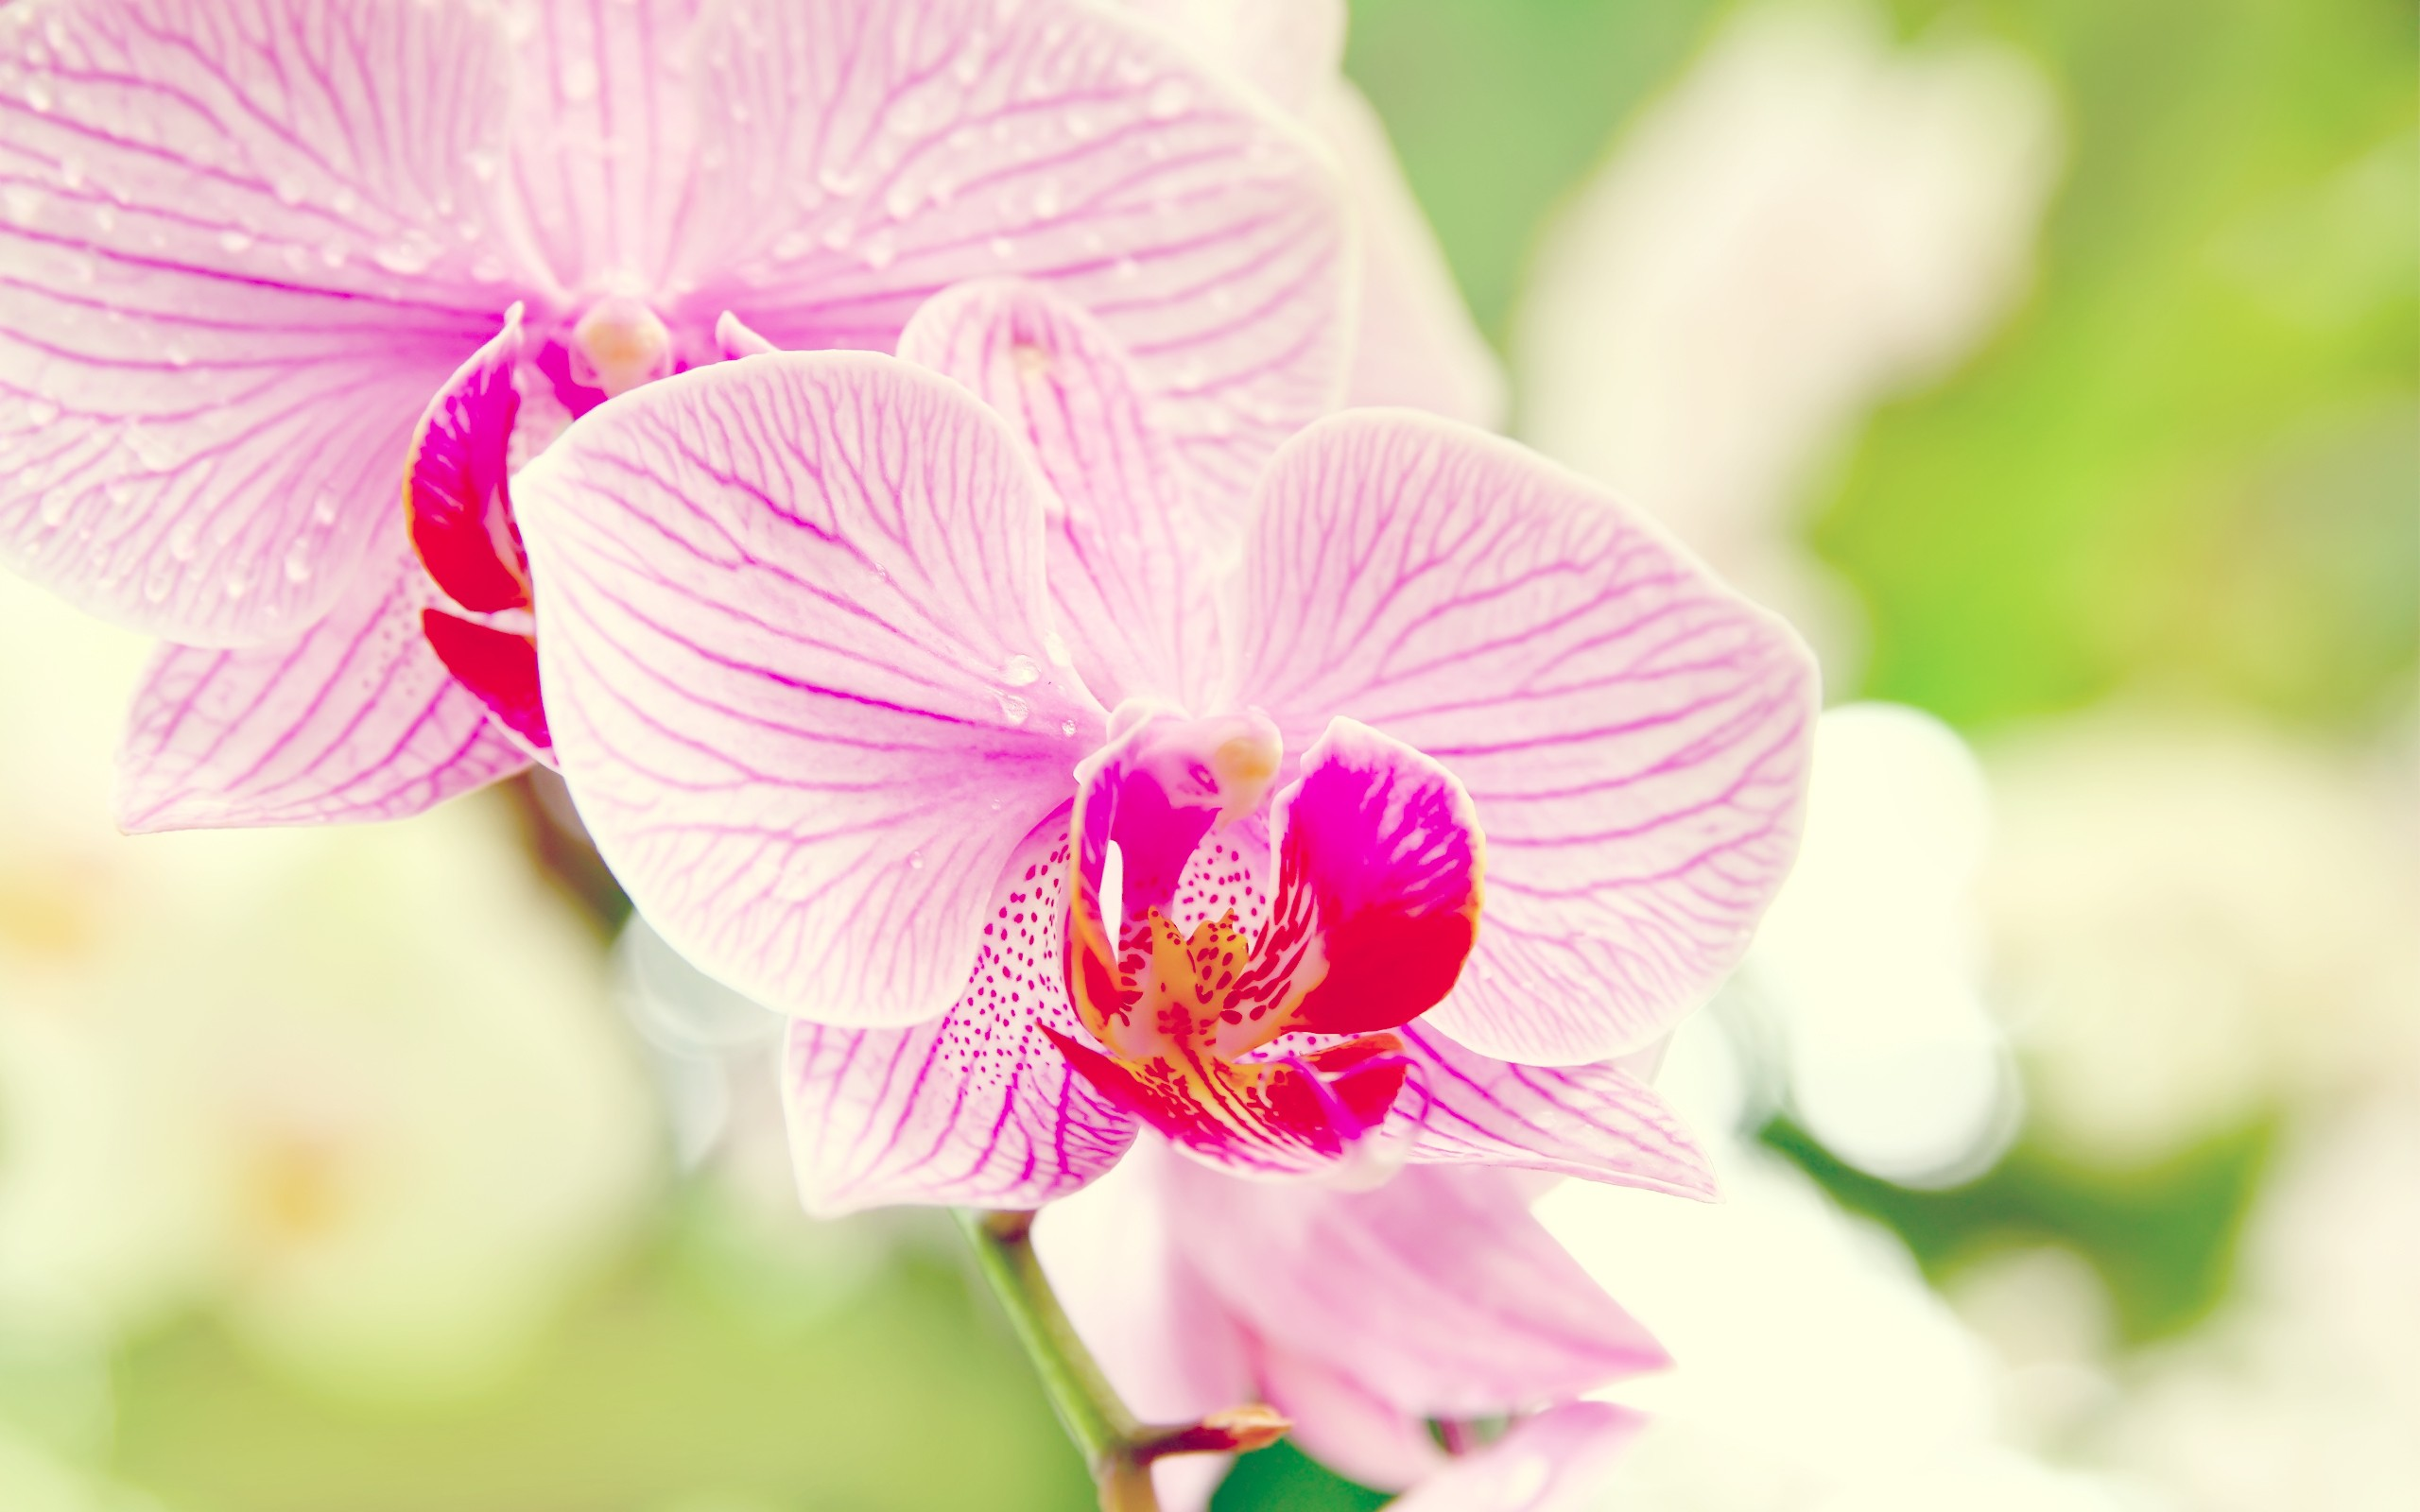 100% Quality Orchid HD Wallpapers, 2560x1600